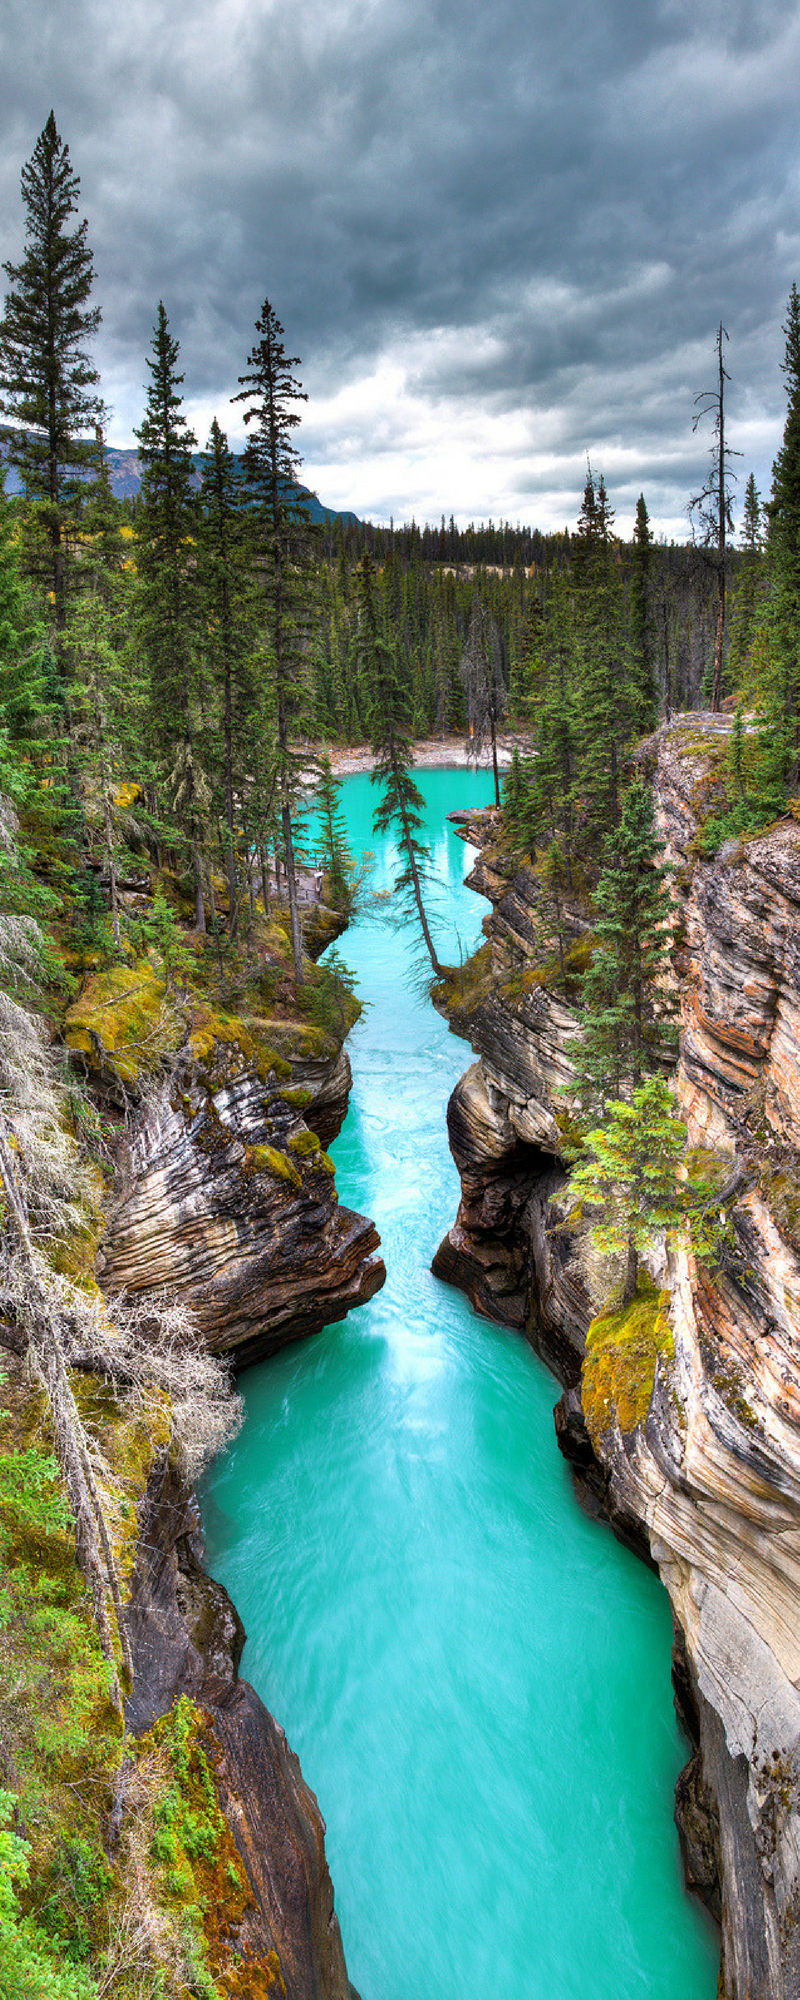 Athabasca Canyon in Jasper National Park! 10 Amazing Things To See And Do In Alberta, Canada! Columbia Icefields | Banff National Park | Lake Abraham | Lake Louise | Peyto Lake and so much more!